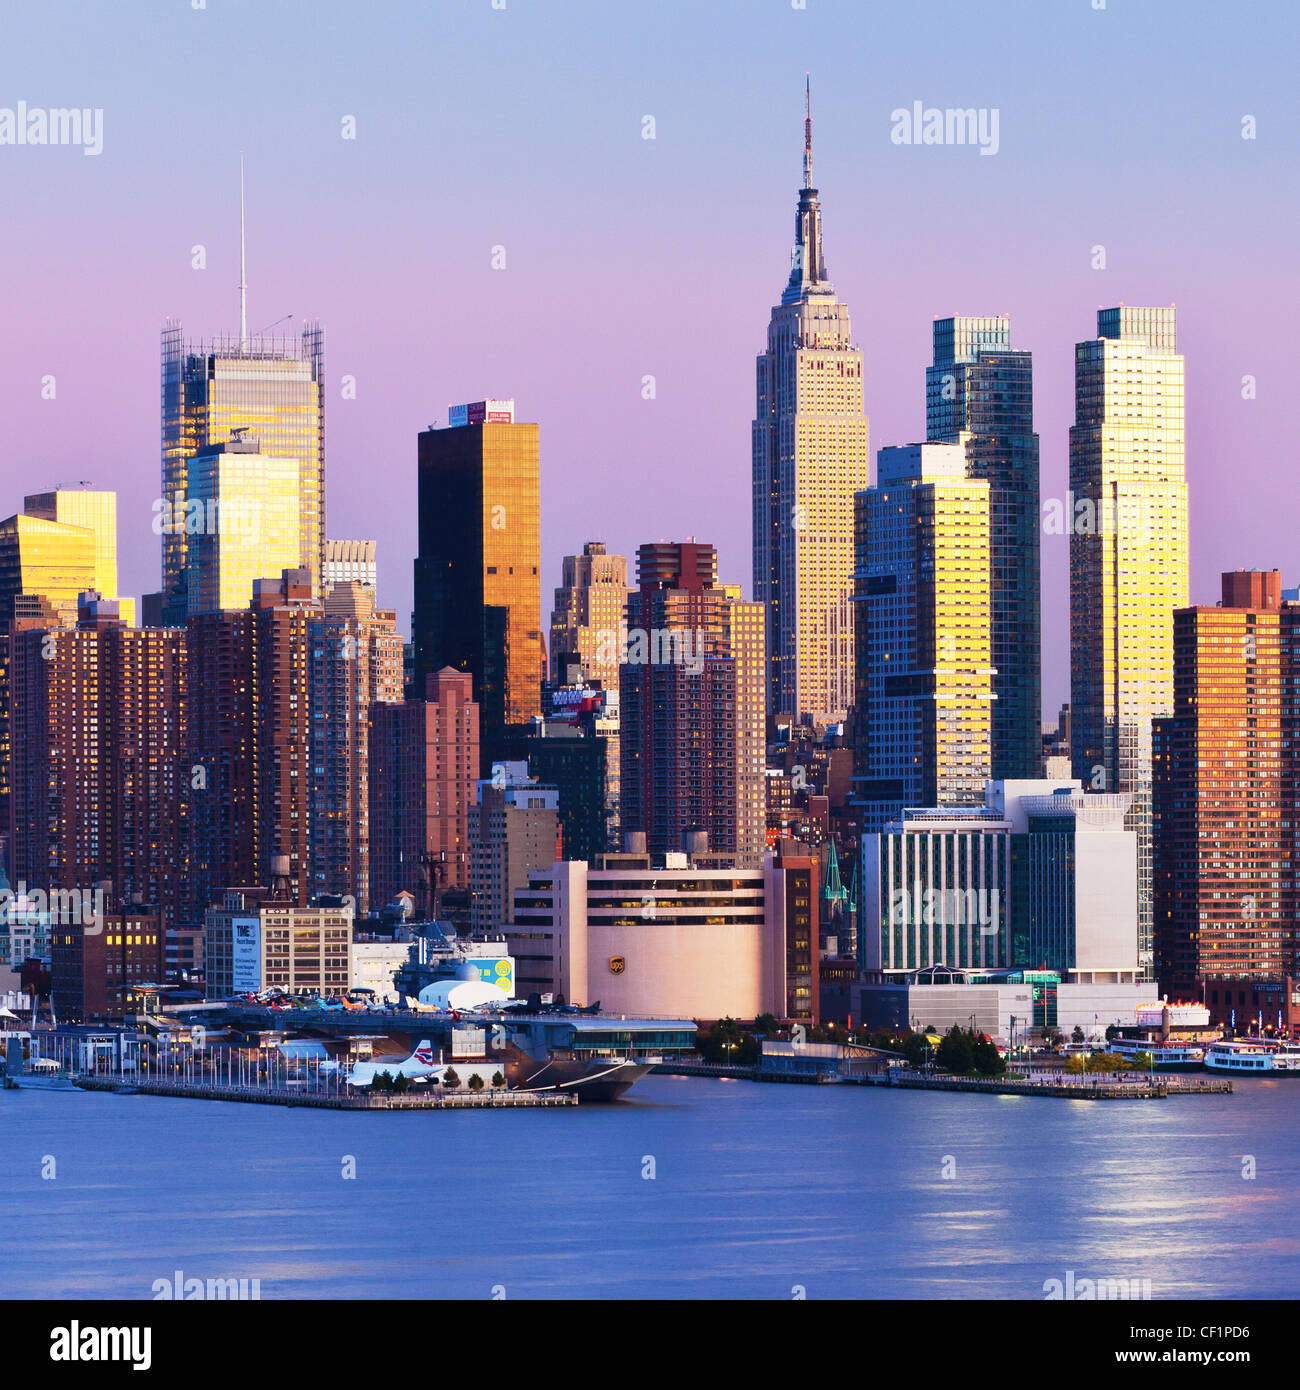 Manhattan, view of Midtown Manhattan across the Hudson River, New York, United States of America - Stock Image